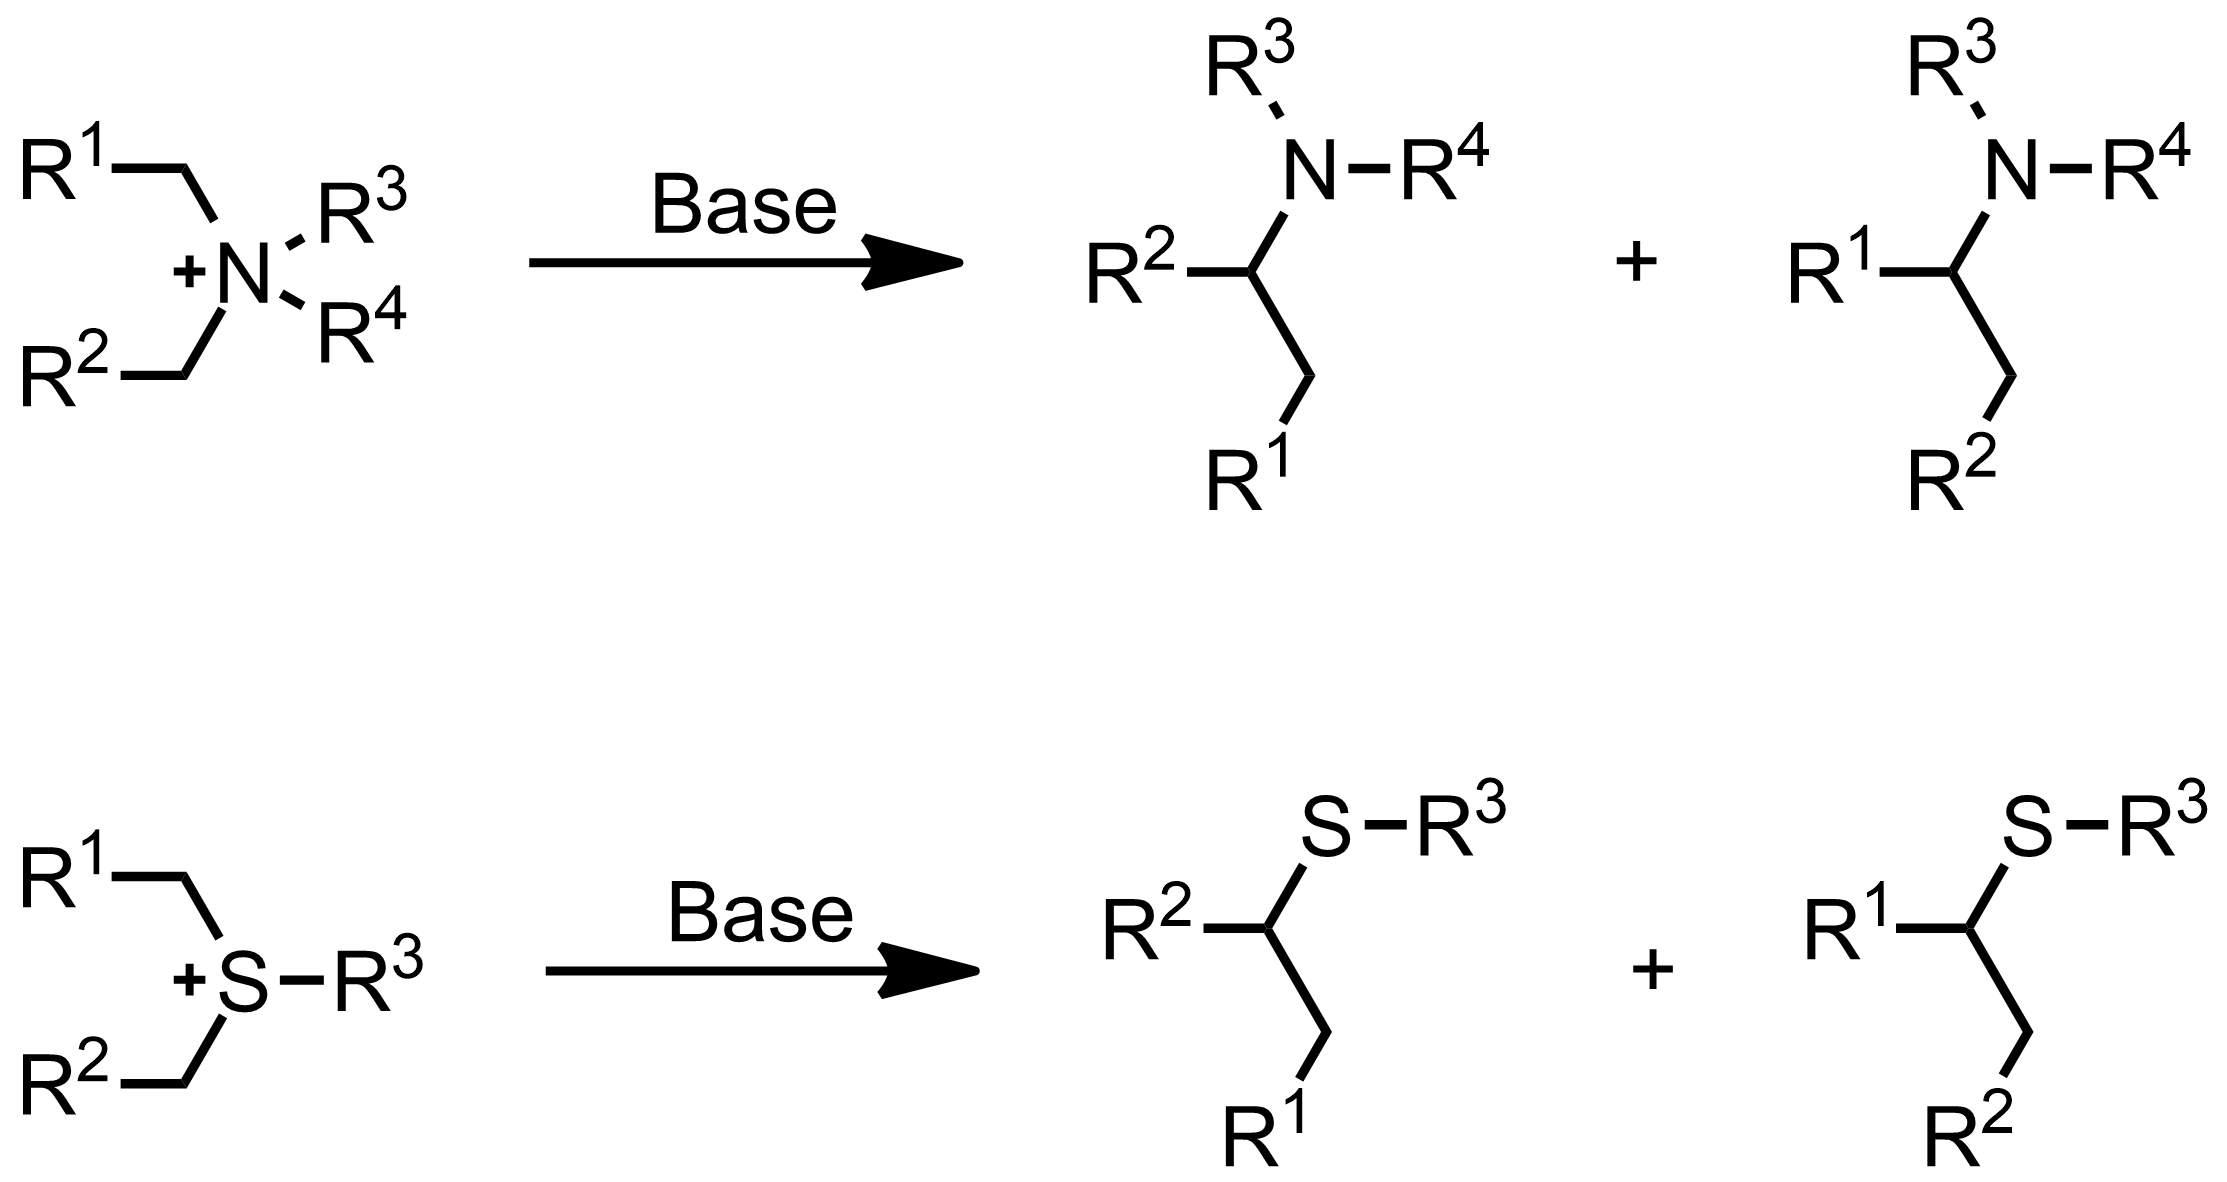 Schematic representation of the Stevens Rearrangement.